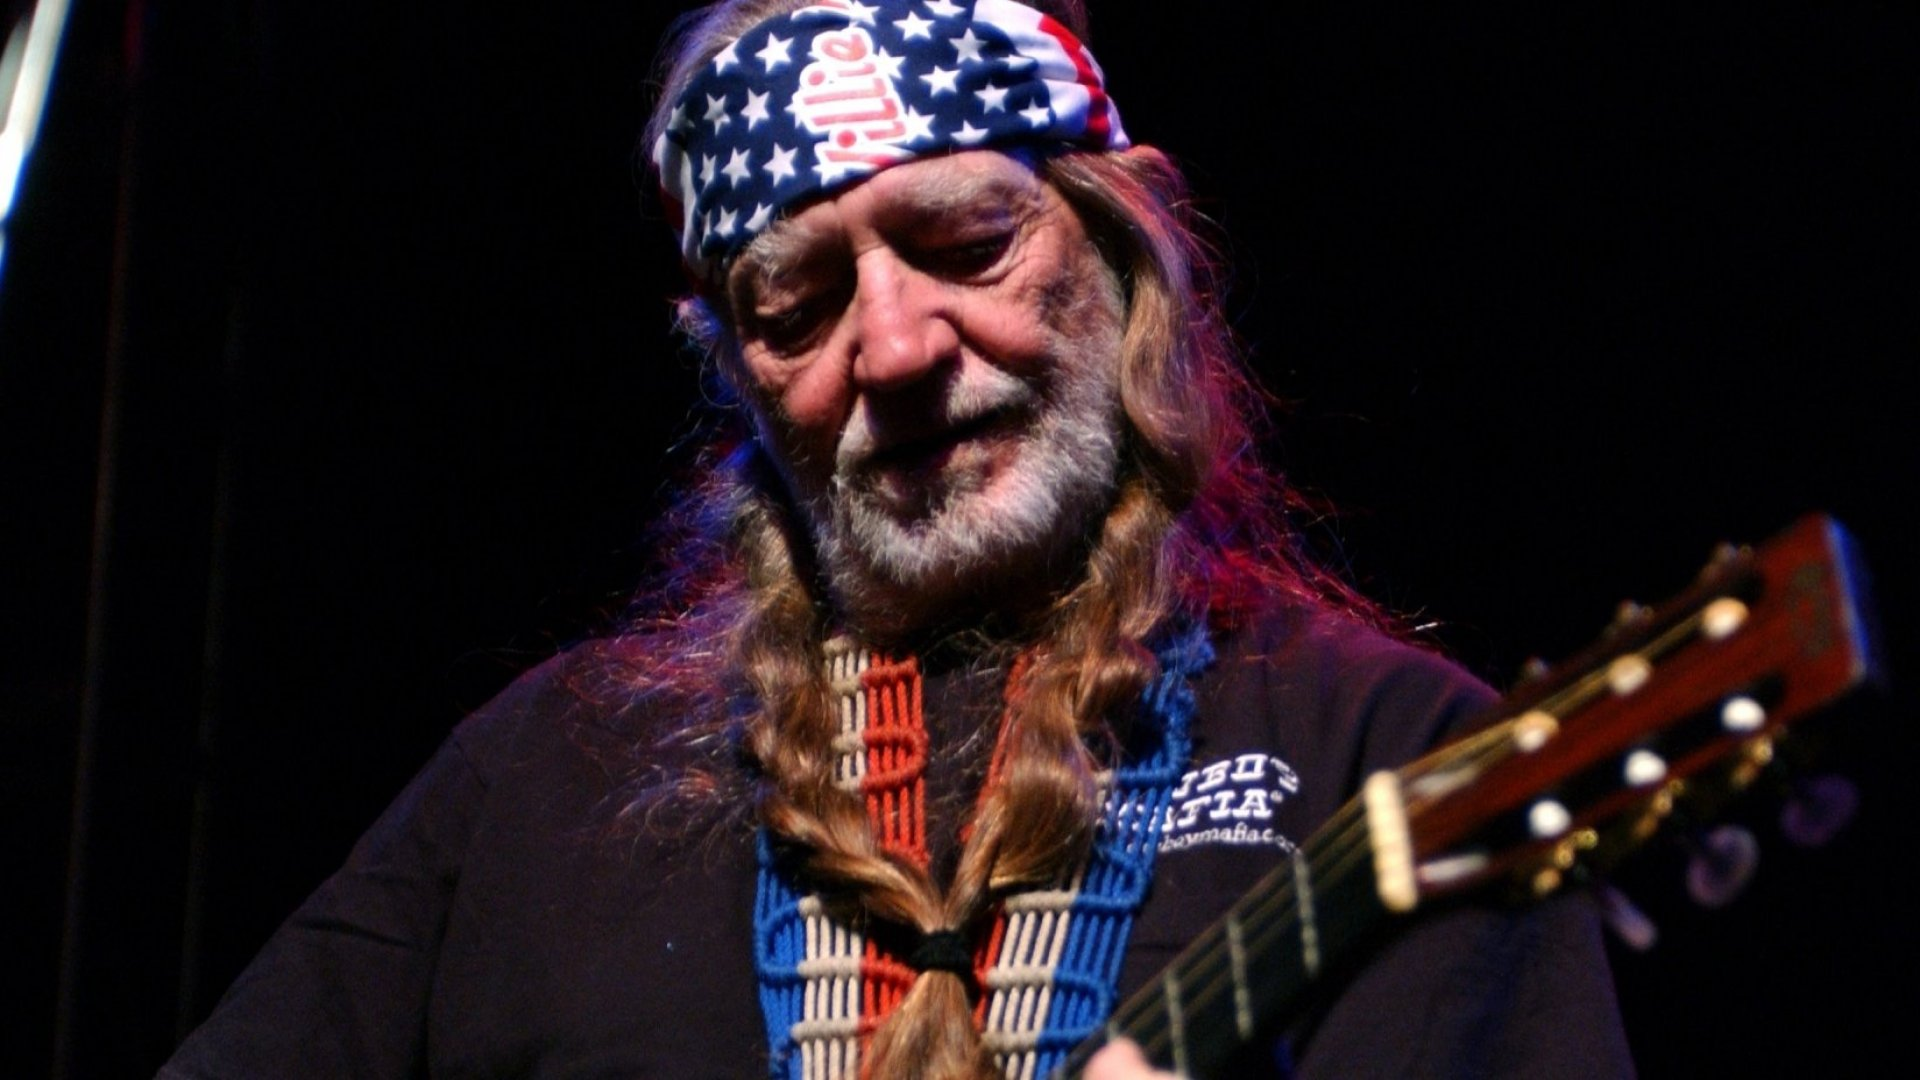 Willie Nelson, a long-time marijuana activist, has started his own brand of cannabis products. The company hired to process the cannabis into Nelson's branded products recently bought the licenses to legally grow its own marijuana in Colorado.